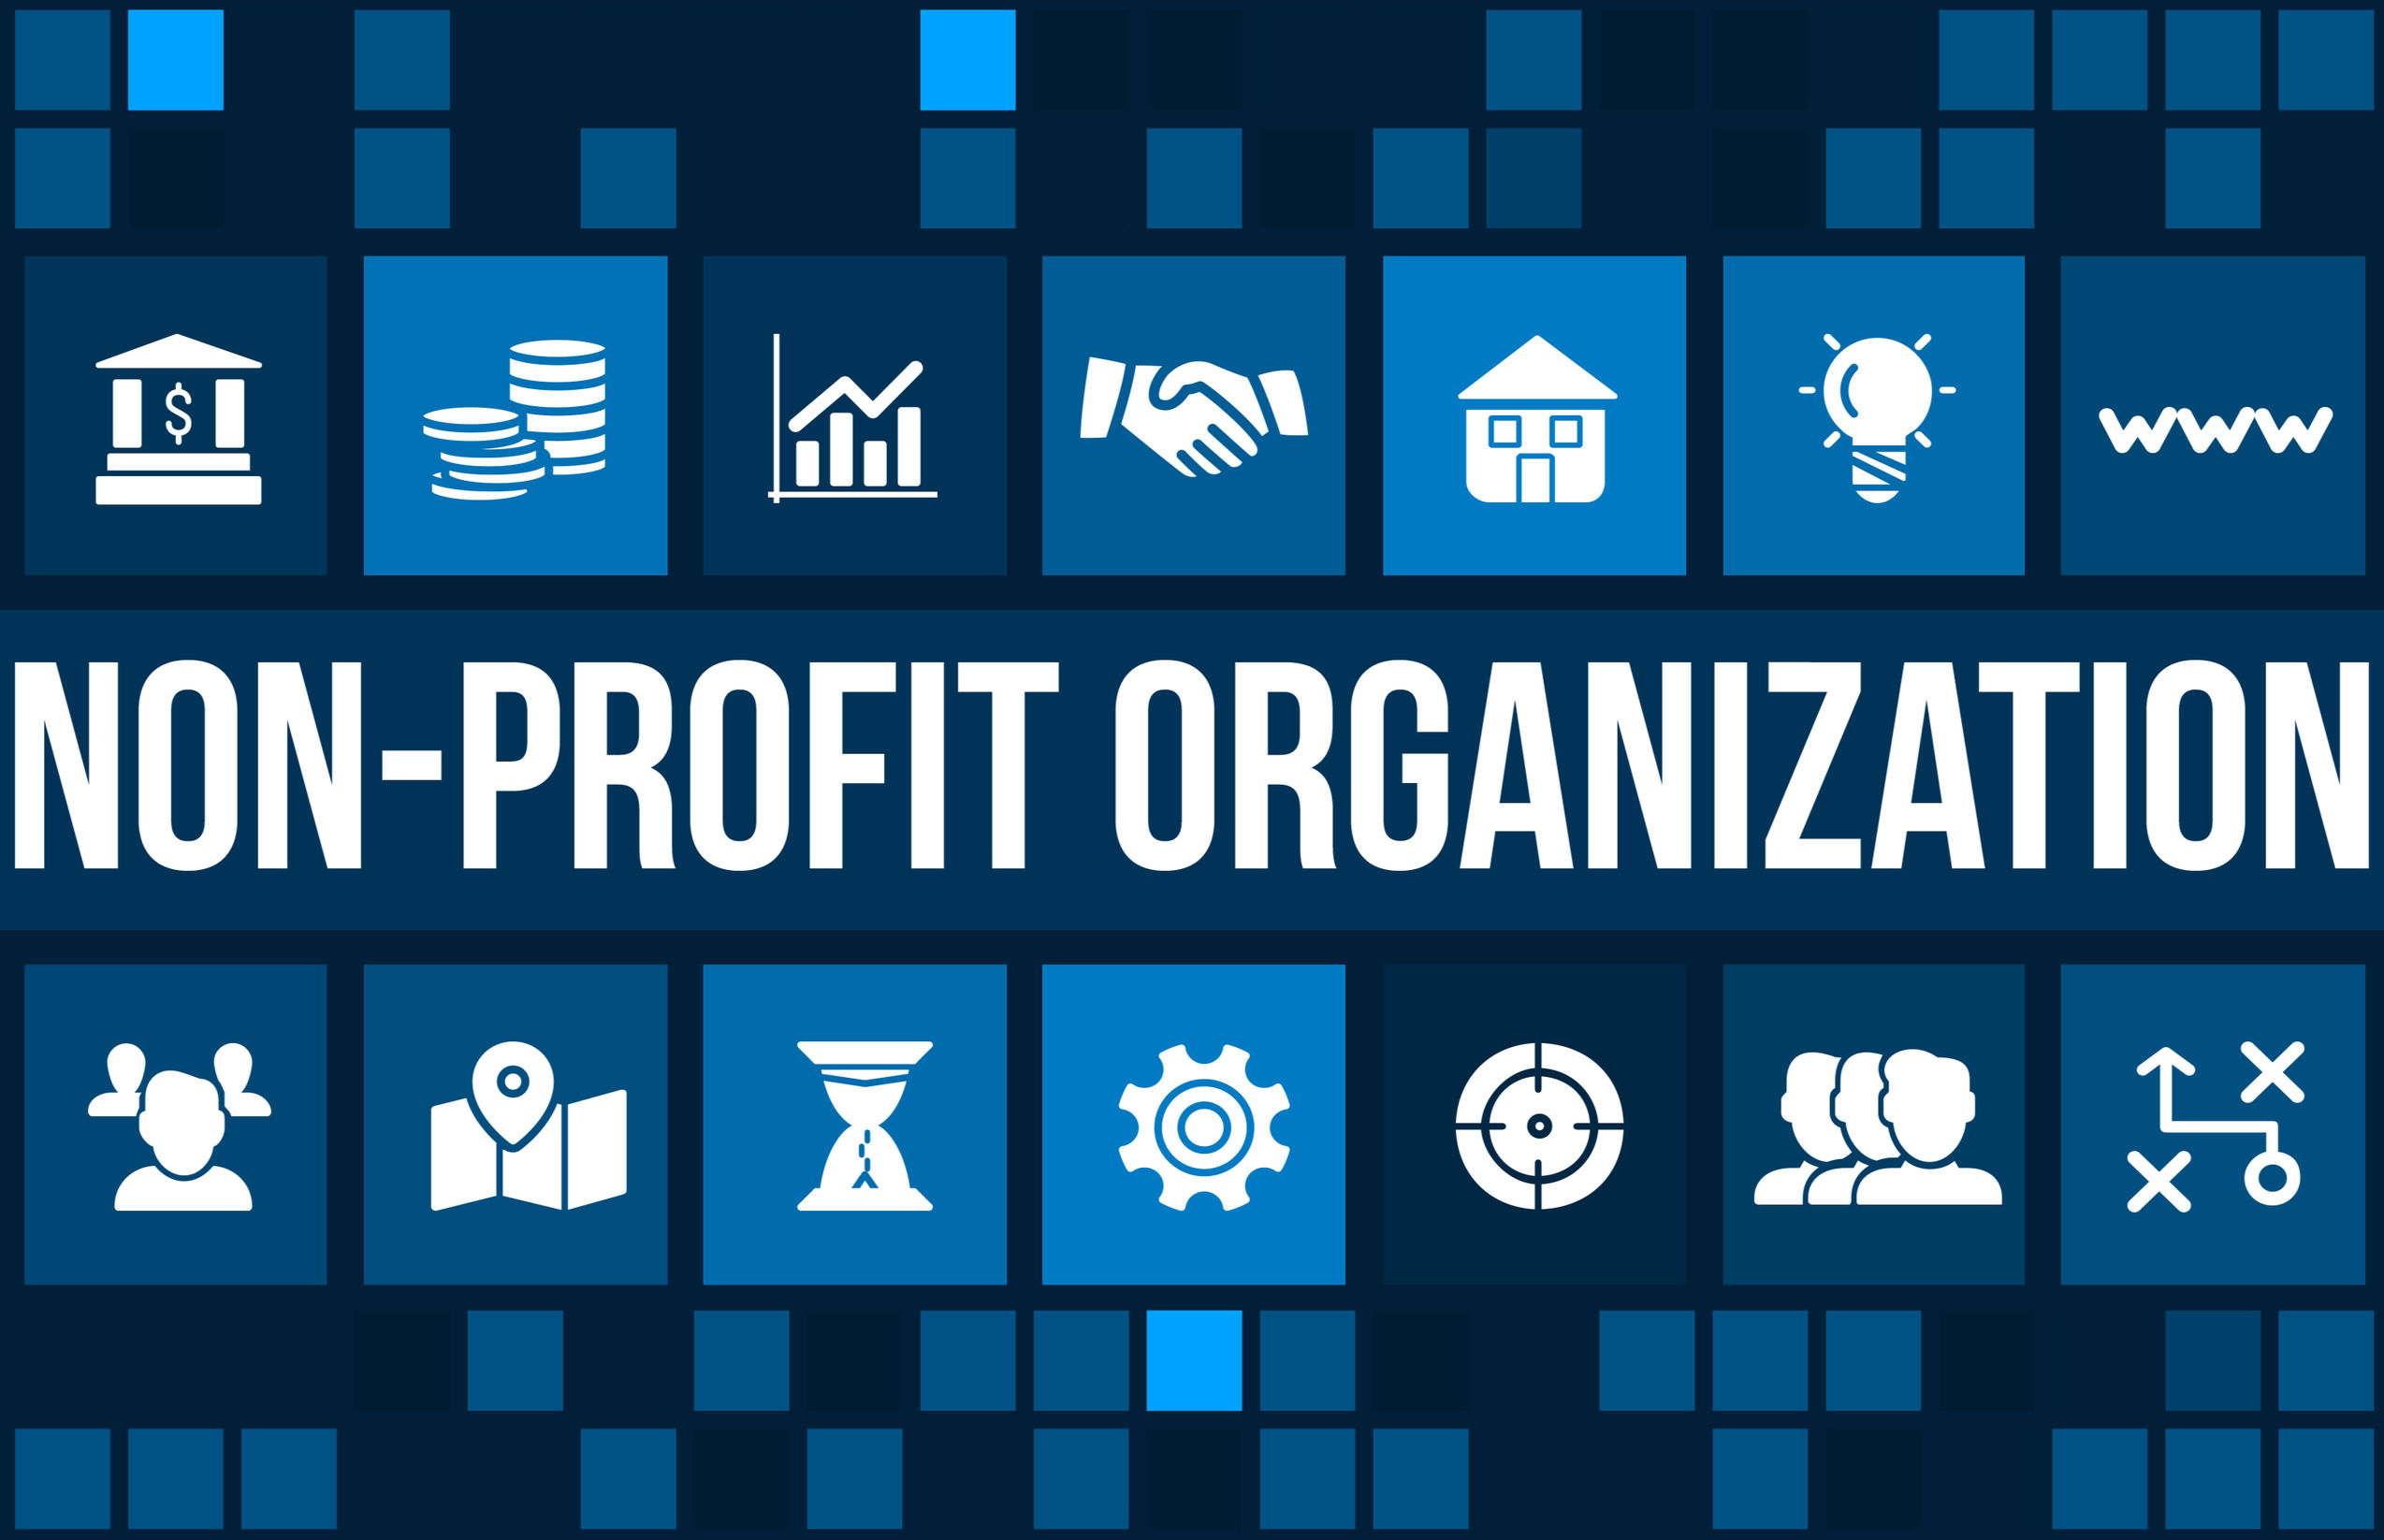 non profit and profit organization Non profit organizations do not have shareholders or pay dividends like a for profit corporation many non profit organizations receive support through government and foundation grants they also rely on individual and corporate donations along with money raised from special events and.